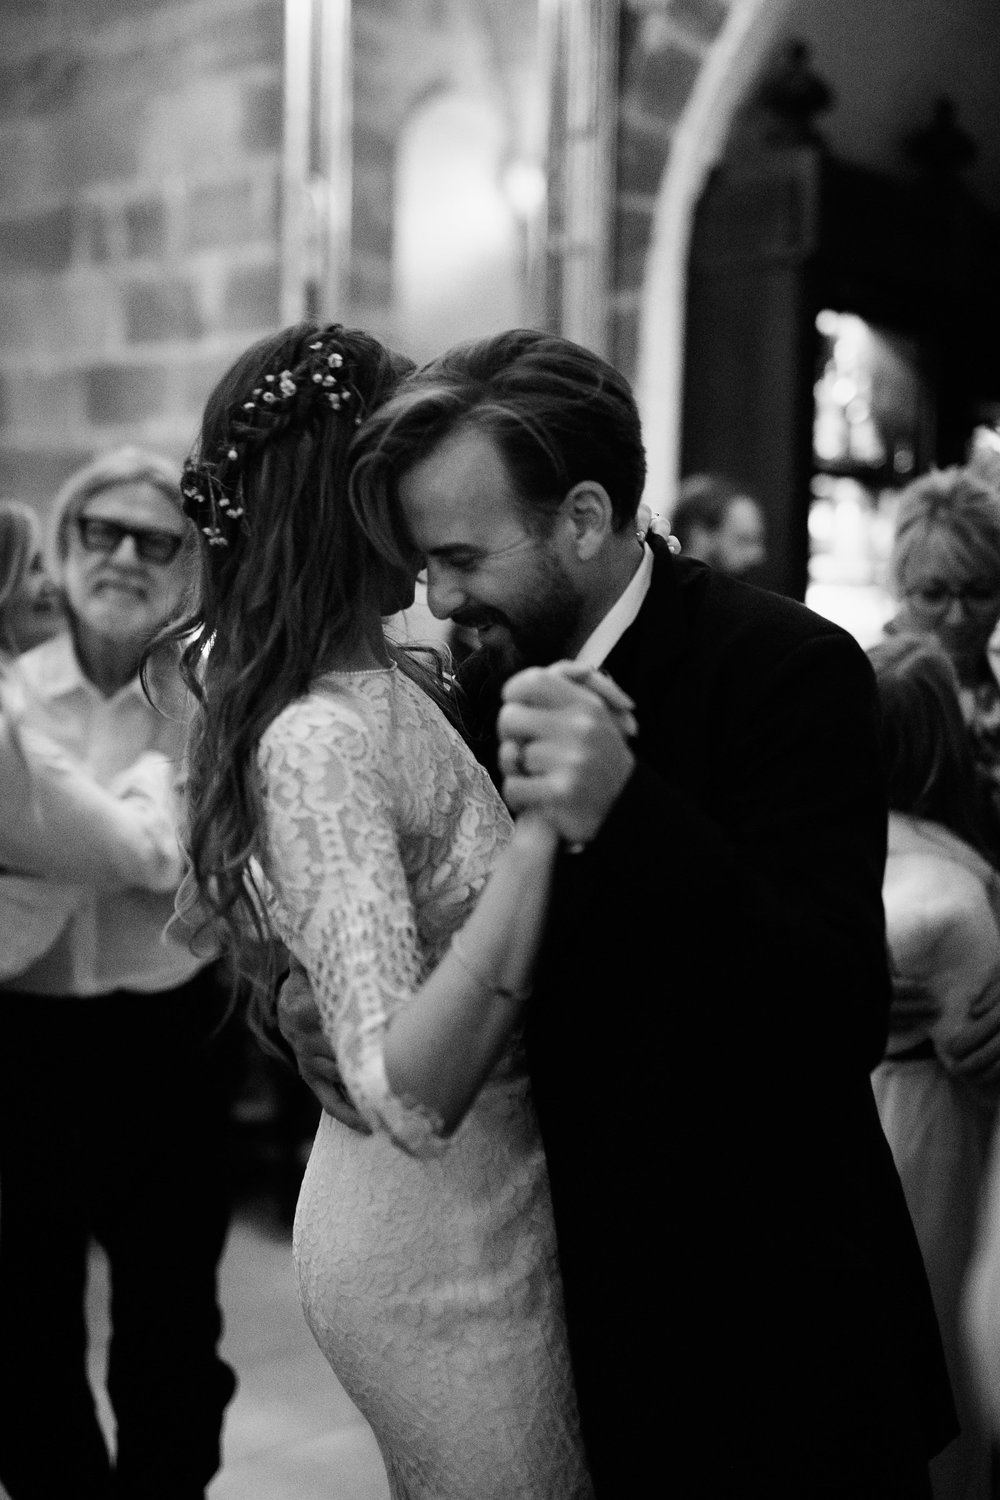 """""""Evocative, intimate and wildly romantic, Alli Oughtred's inimitable aesthetic is redefining the art of wedding photography"""" - The Lanehttps://thelane.com/wedding-photographer-alli-oughtred/"""